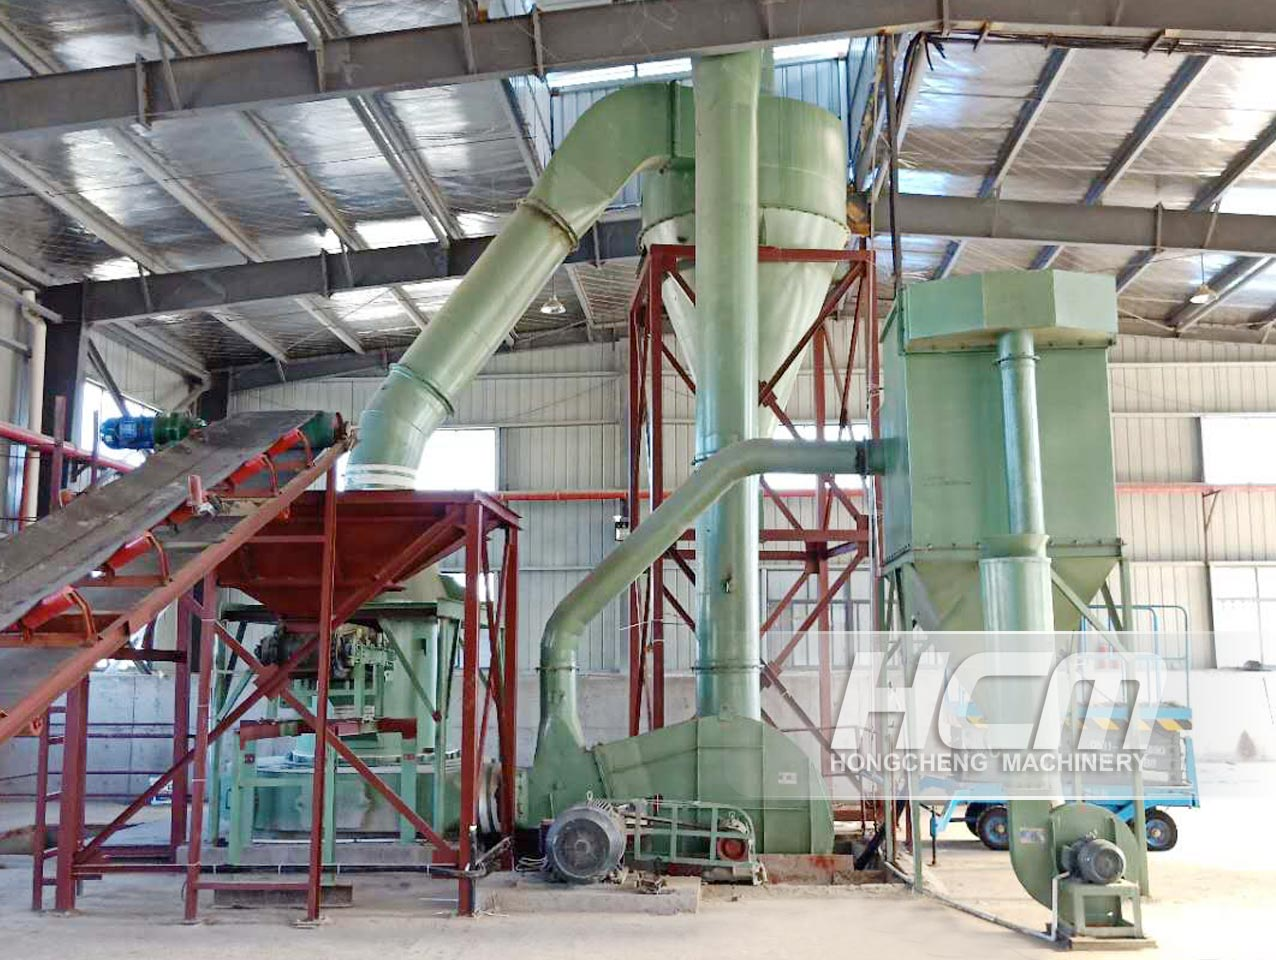 What is the price of investment in a 250 mesh calcium oxide grinding mill equipment?